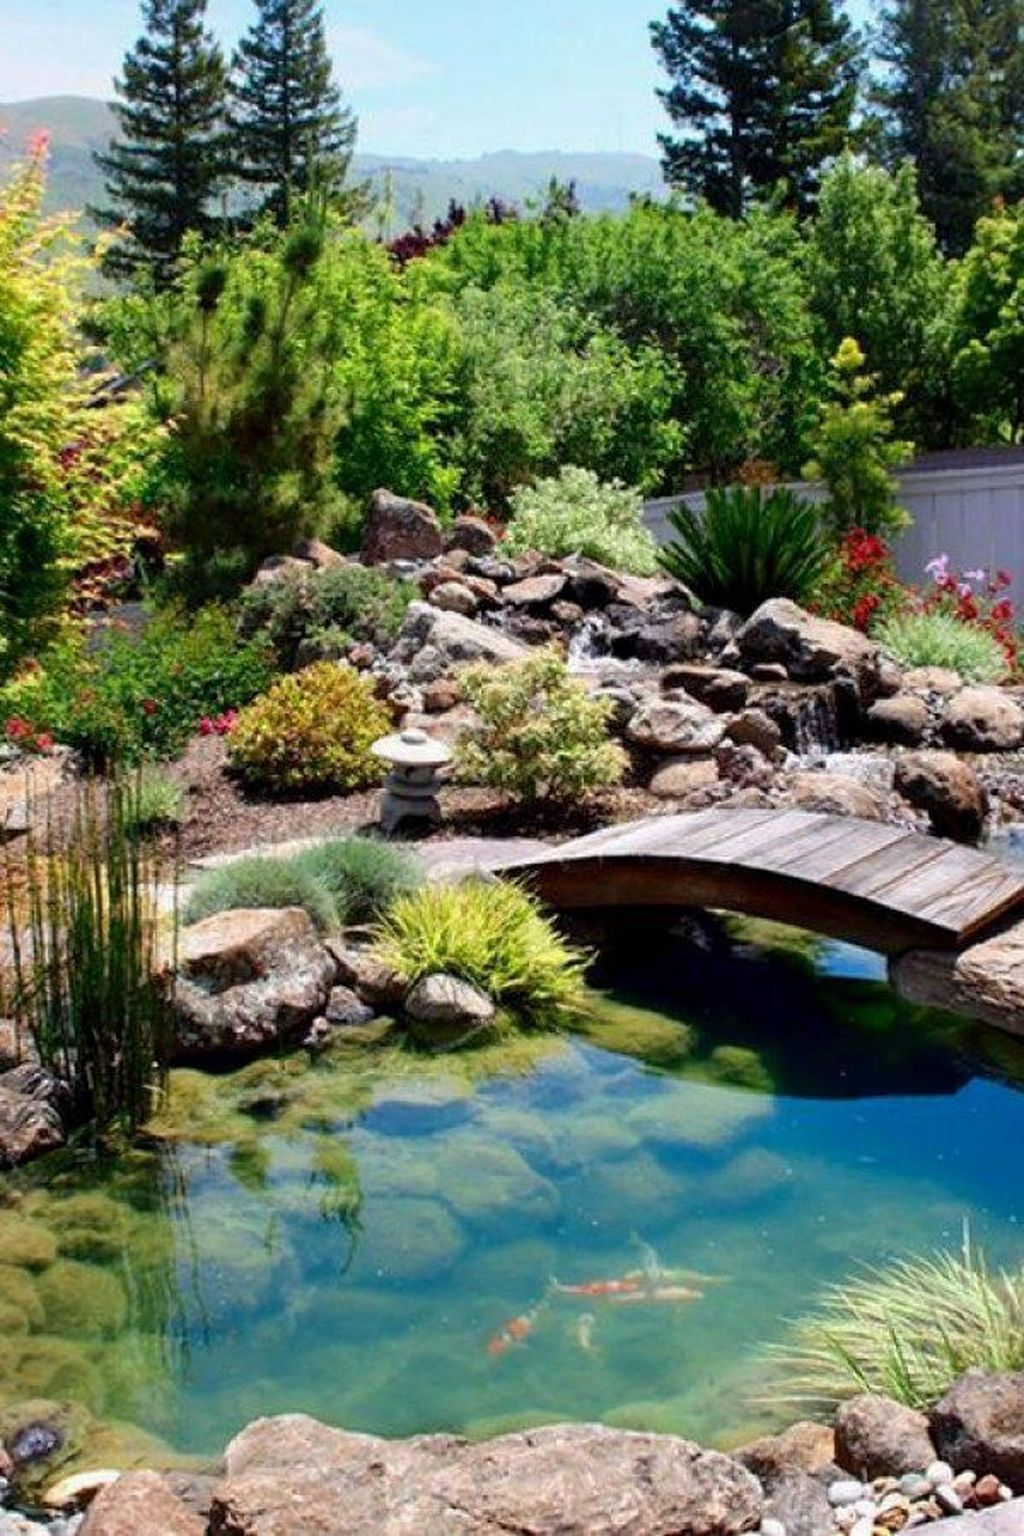 Cool Fish Pond Garden Landscaping Ideas For Backyard 10